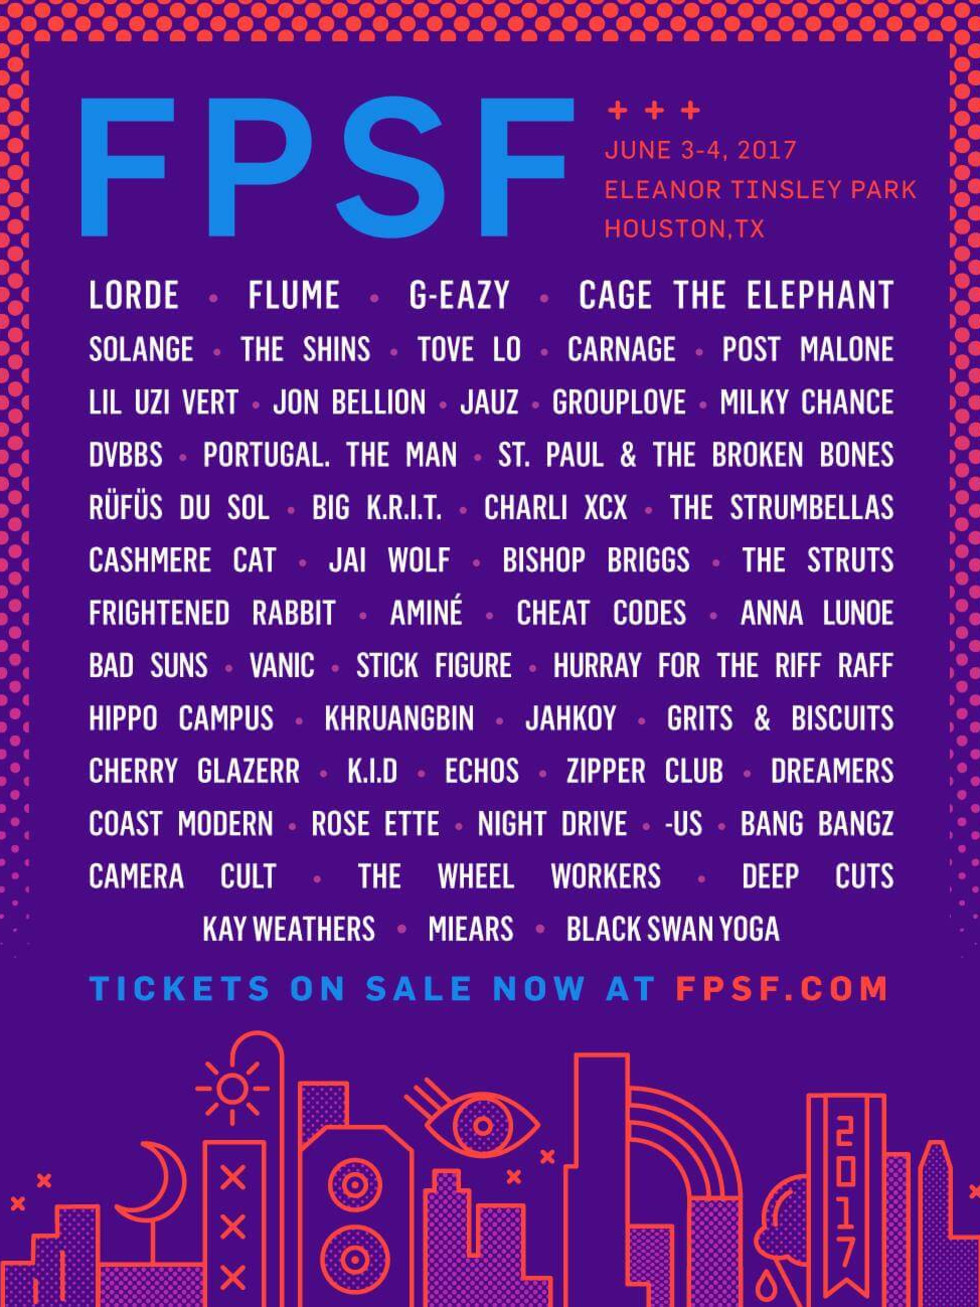 Houston, FPSF 2017 music lineup, Feb 2017, flyer